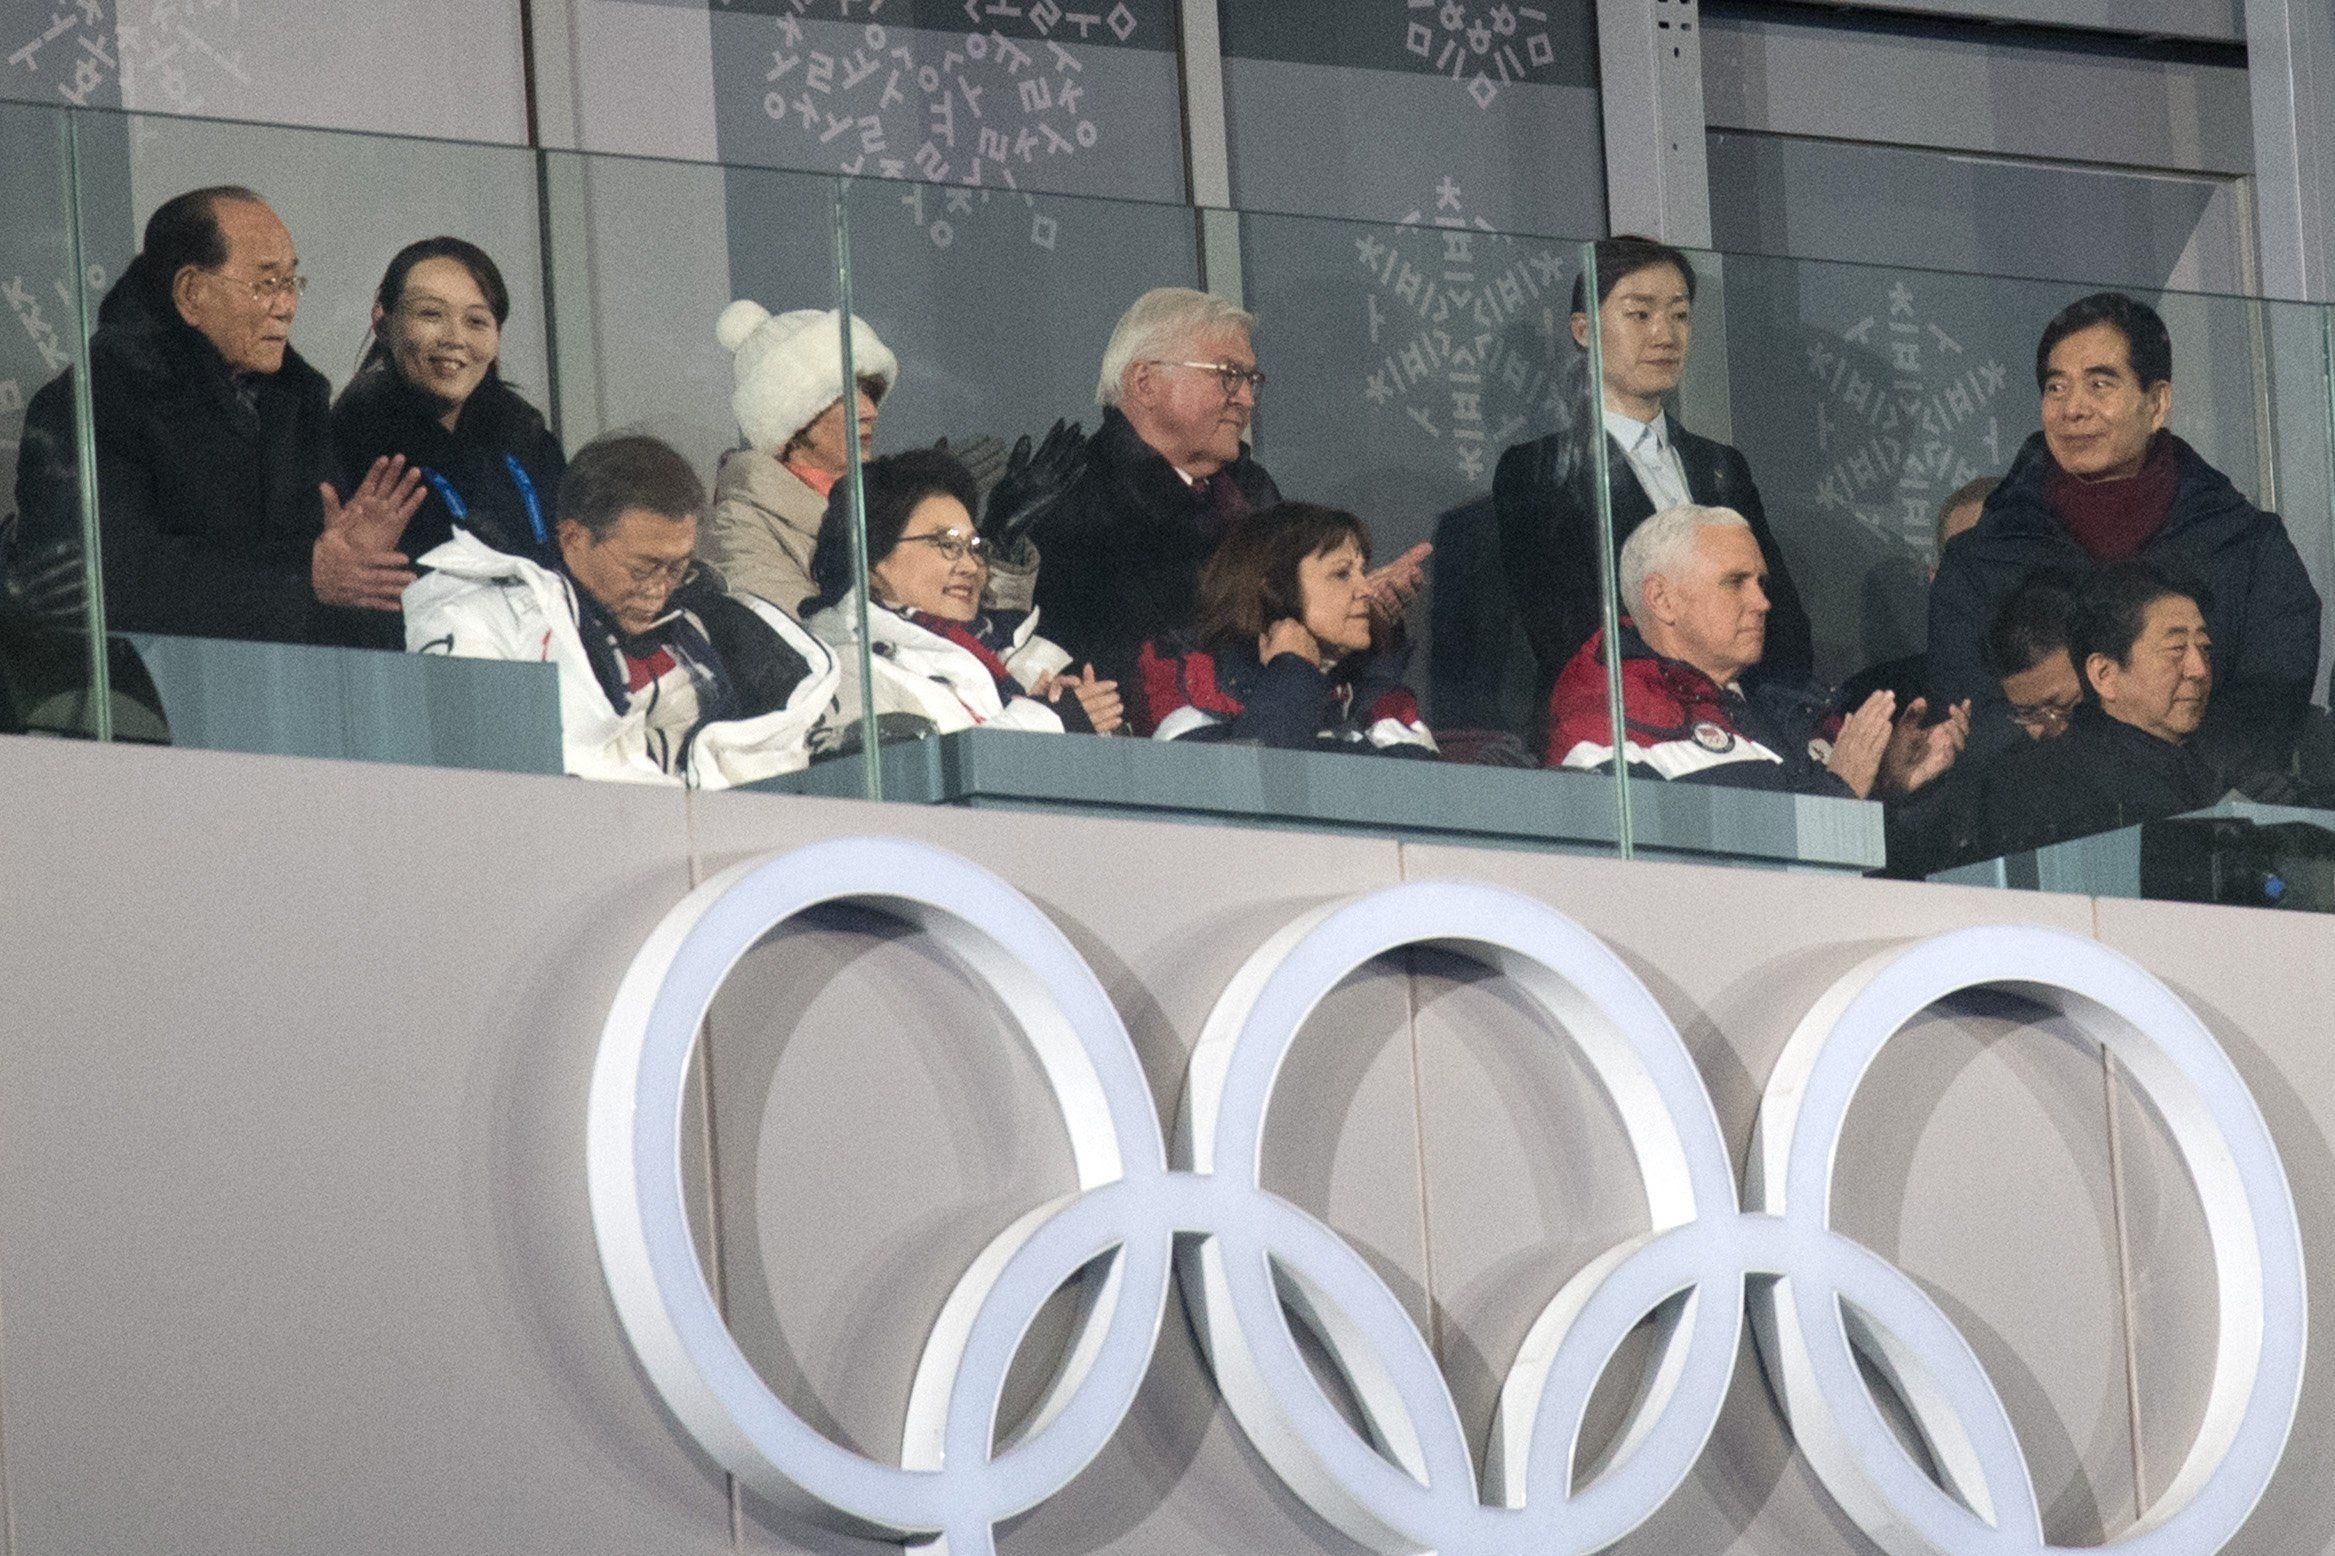 TheDC Newsroom: Winter Olympics Are Heating Up